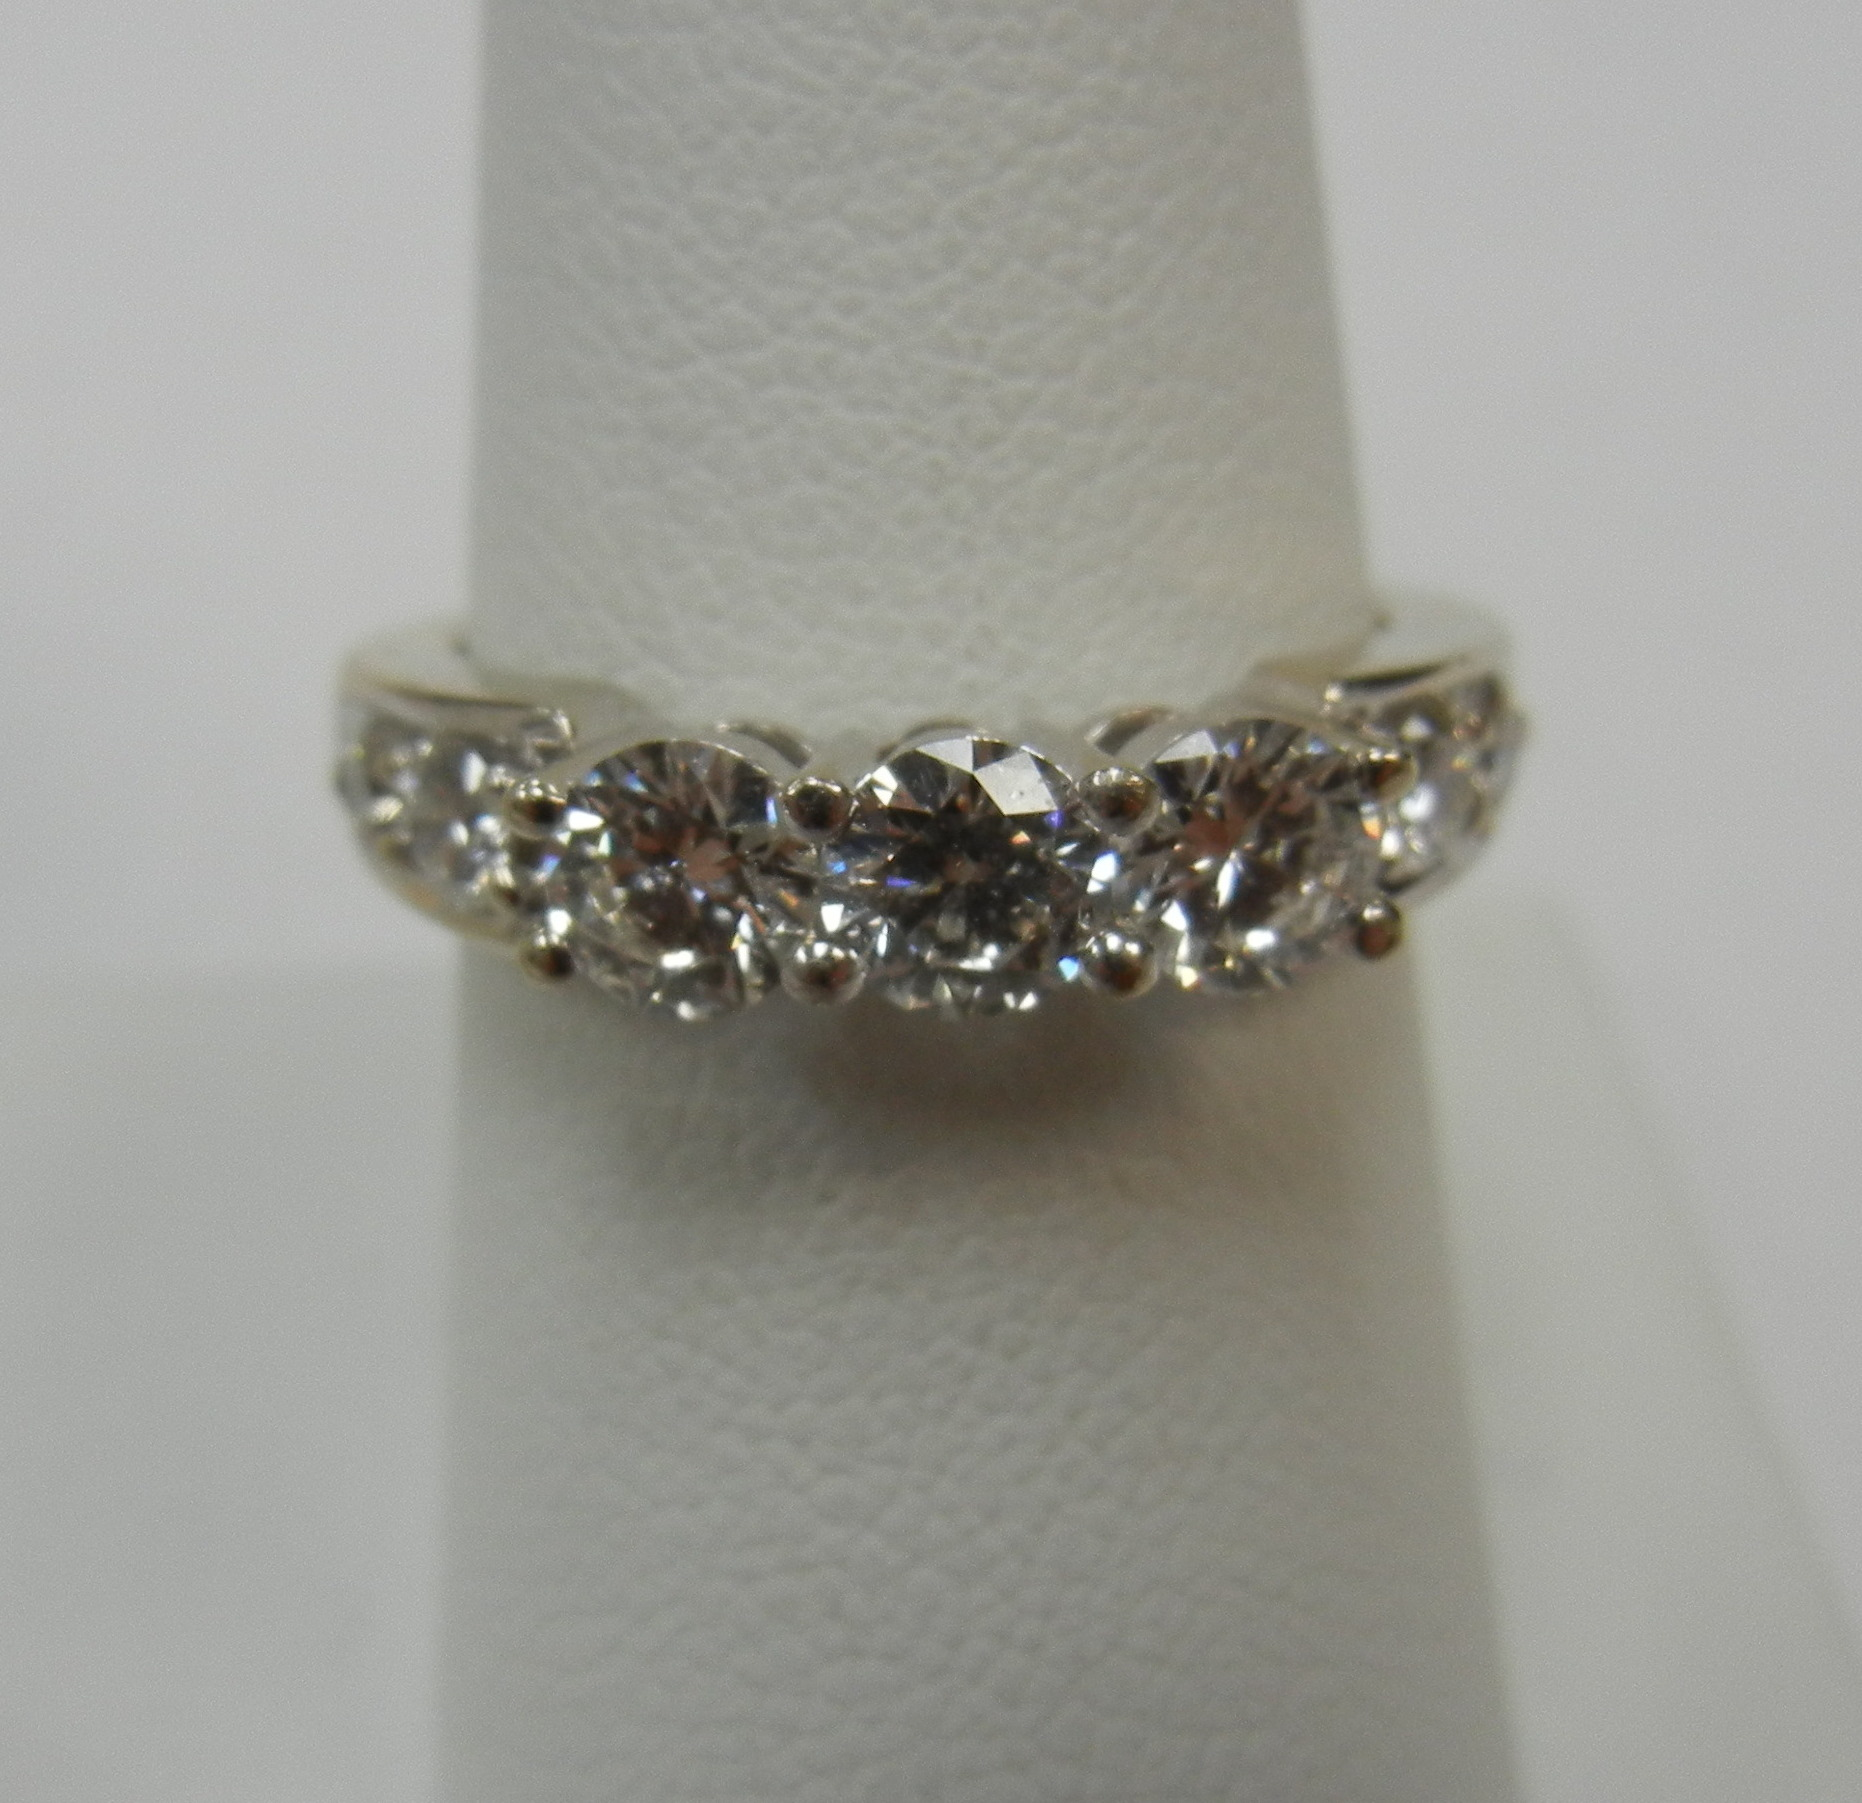 14 KT WHITE GOLD PAST PRESENT FUTURE RING WITH 3 1/3 CT DIAMONDS - SIZE 7.5